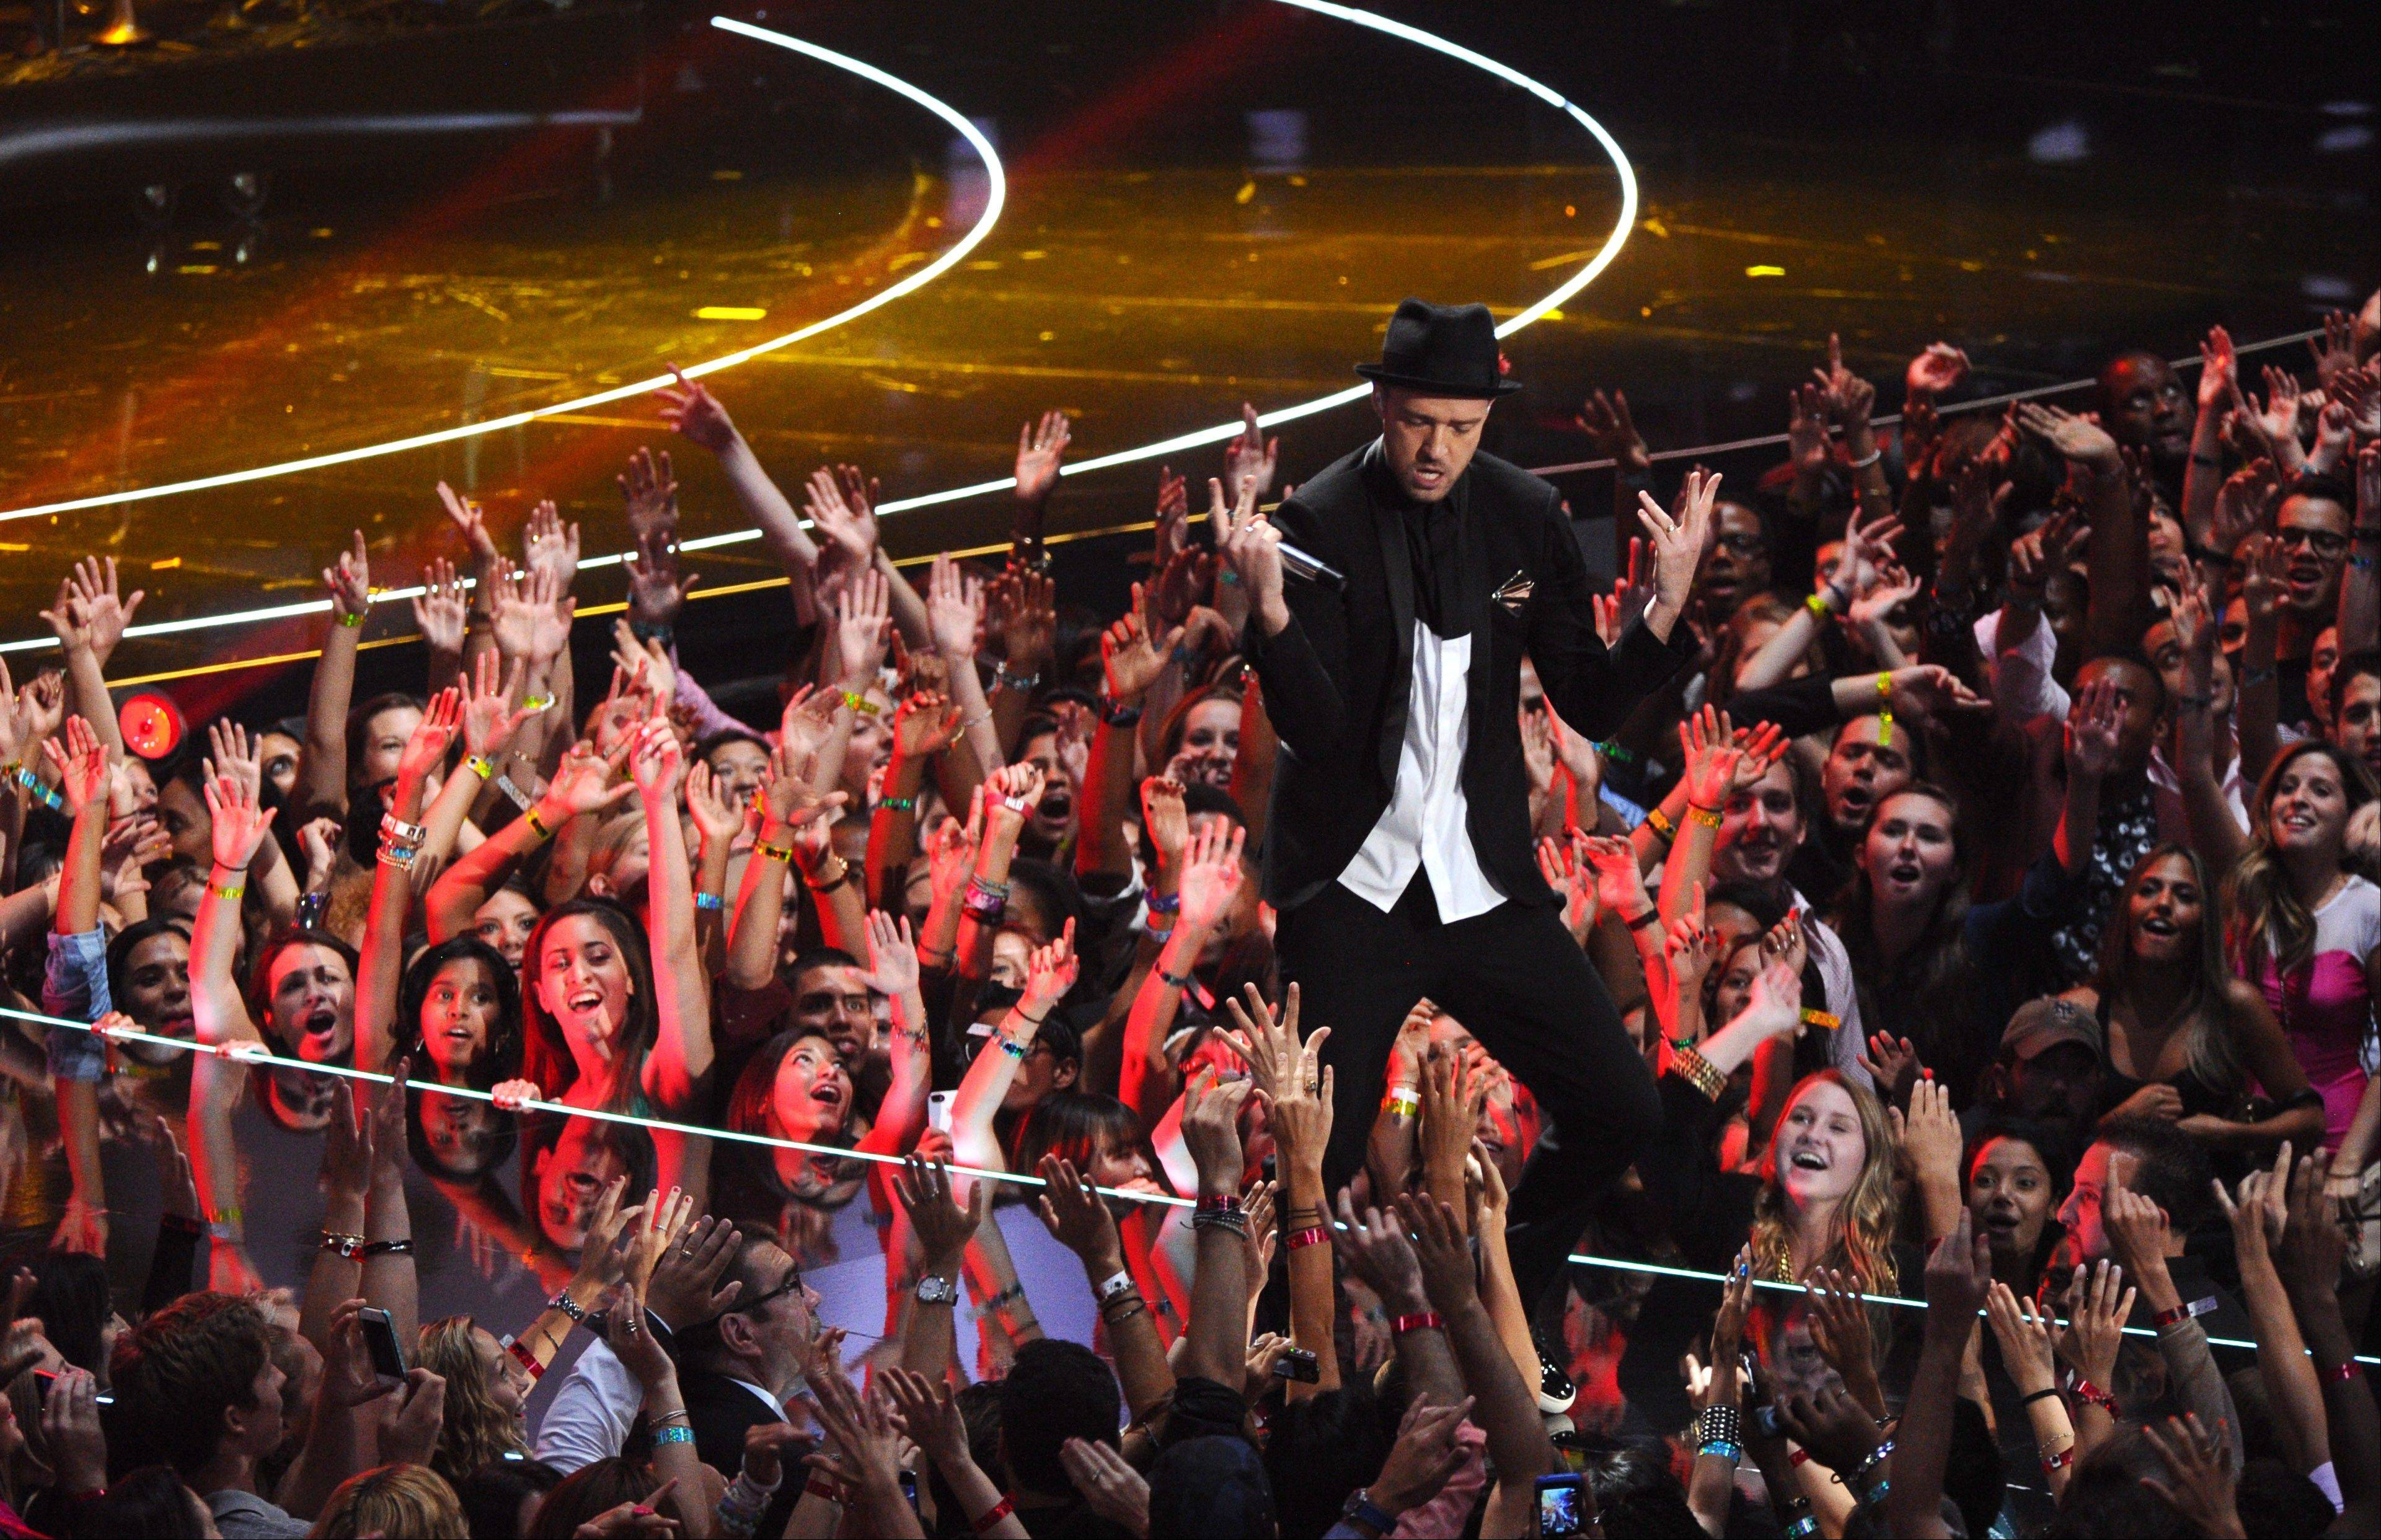 Justin Timberlake performs at the MTV Video Music Awards on Sunday, Aug. 25, 2013, at the Barclays Center in the Brooklyn borough of New York.